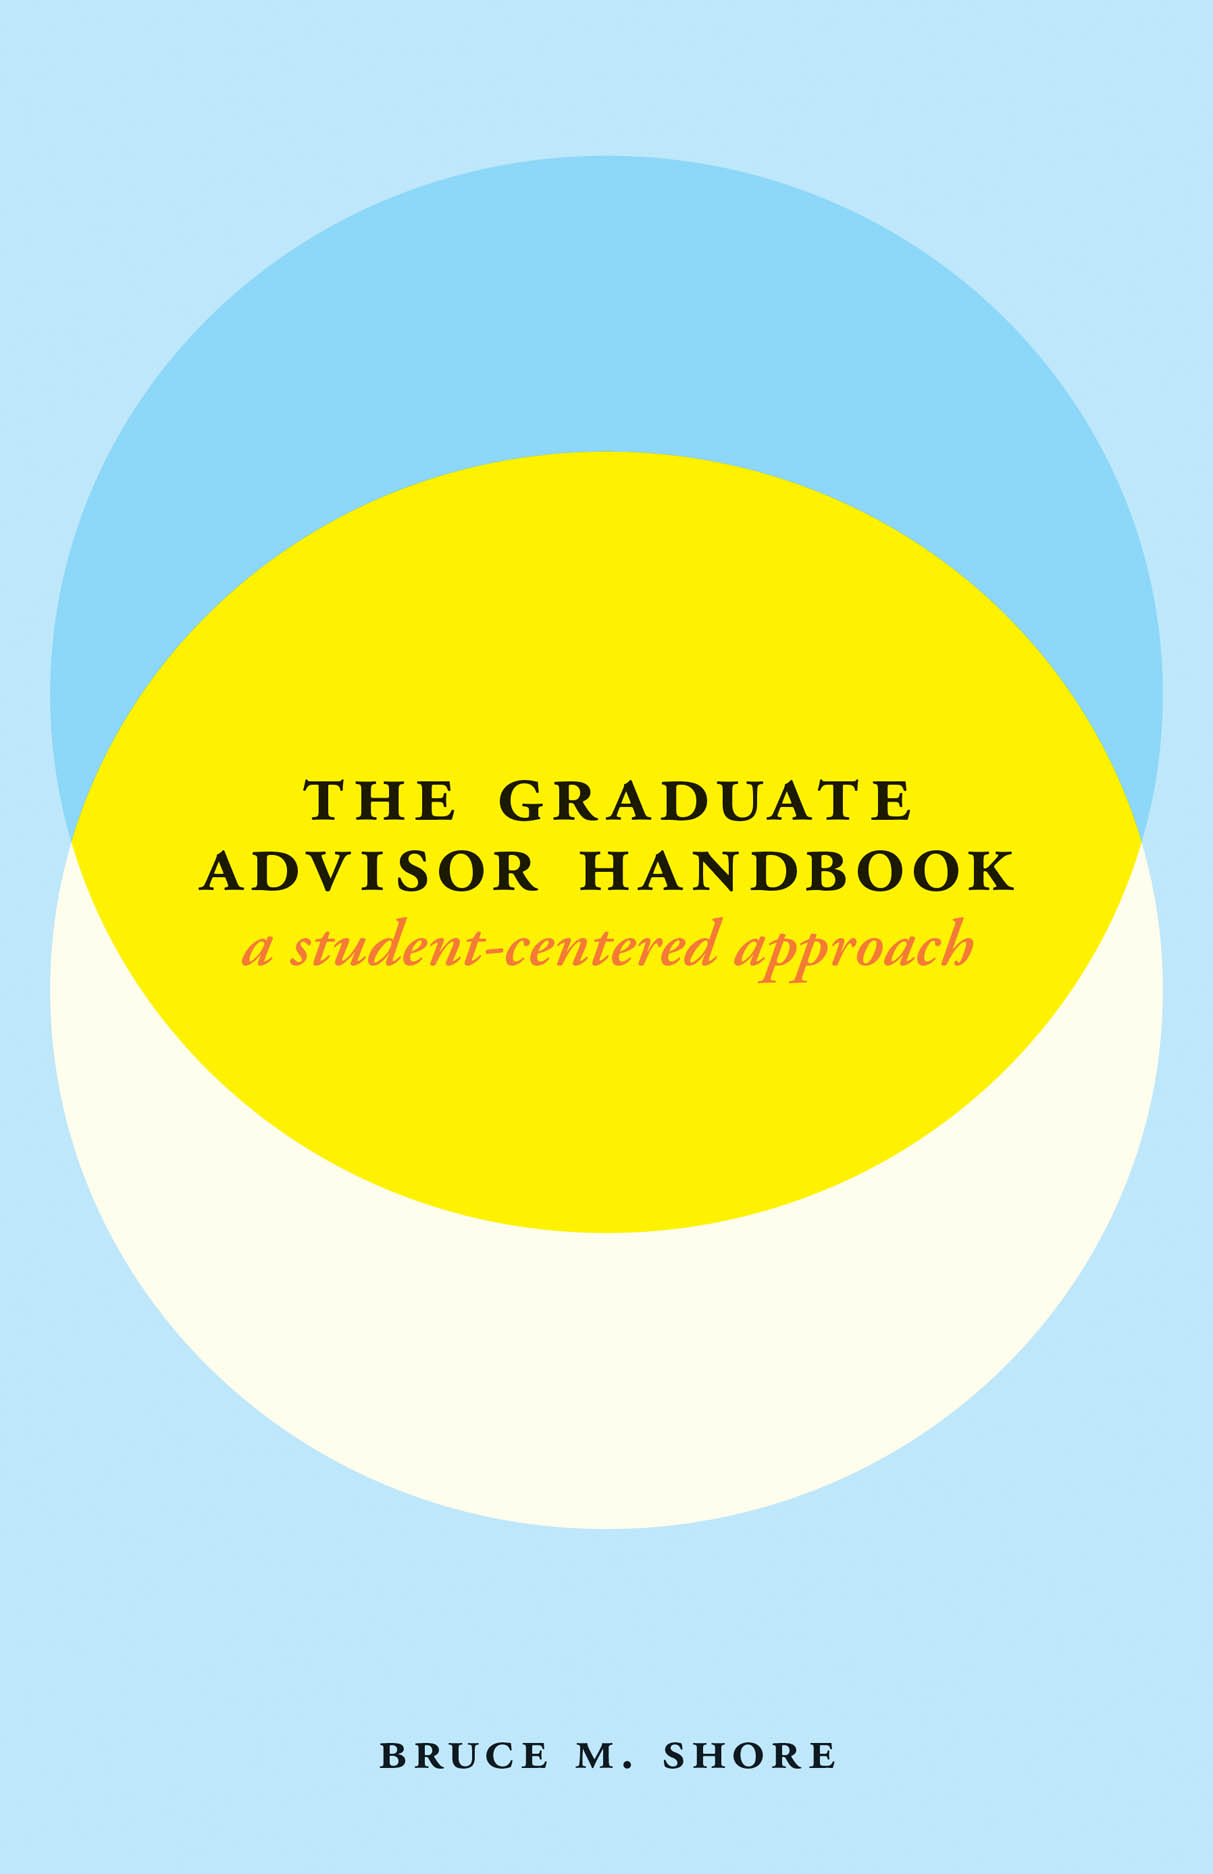 The Graduate Advisor Handbook: A Student-Centered Approach